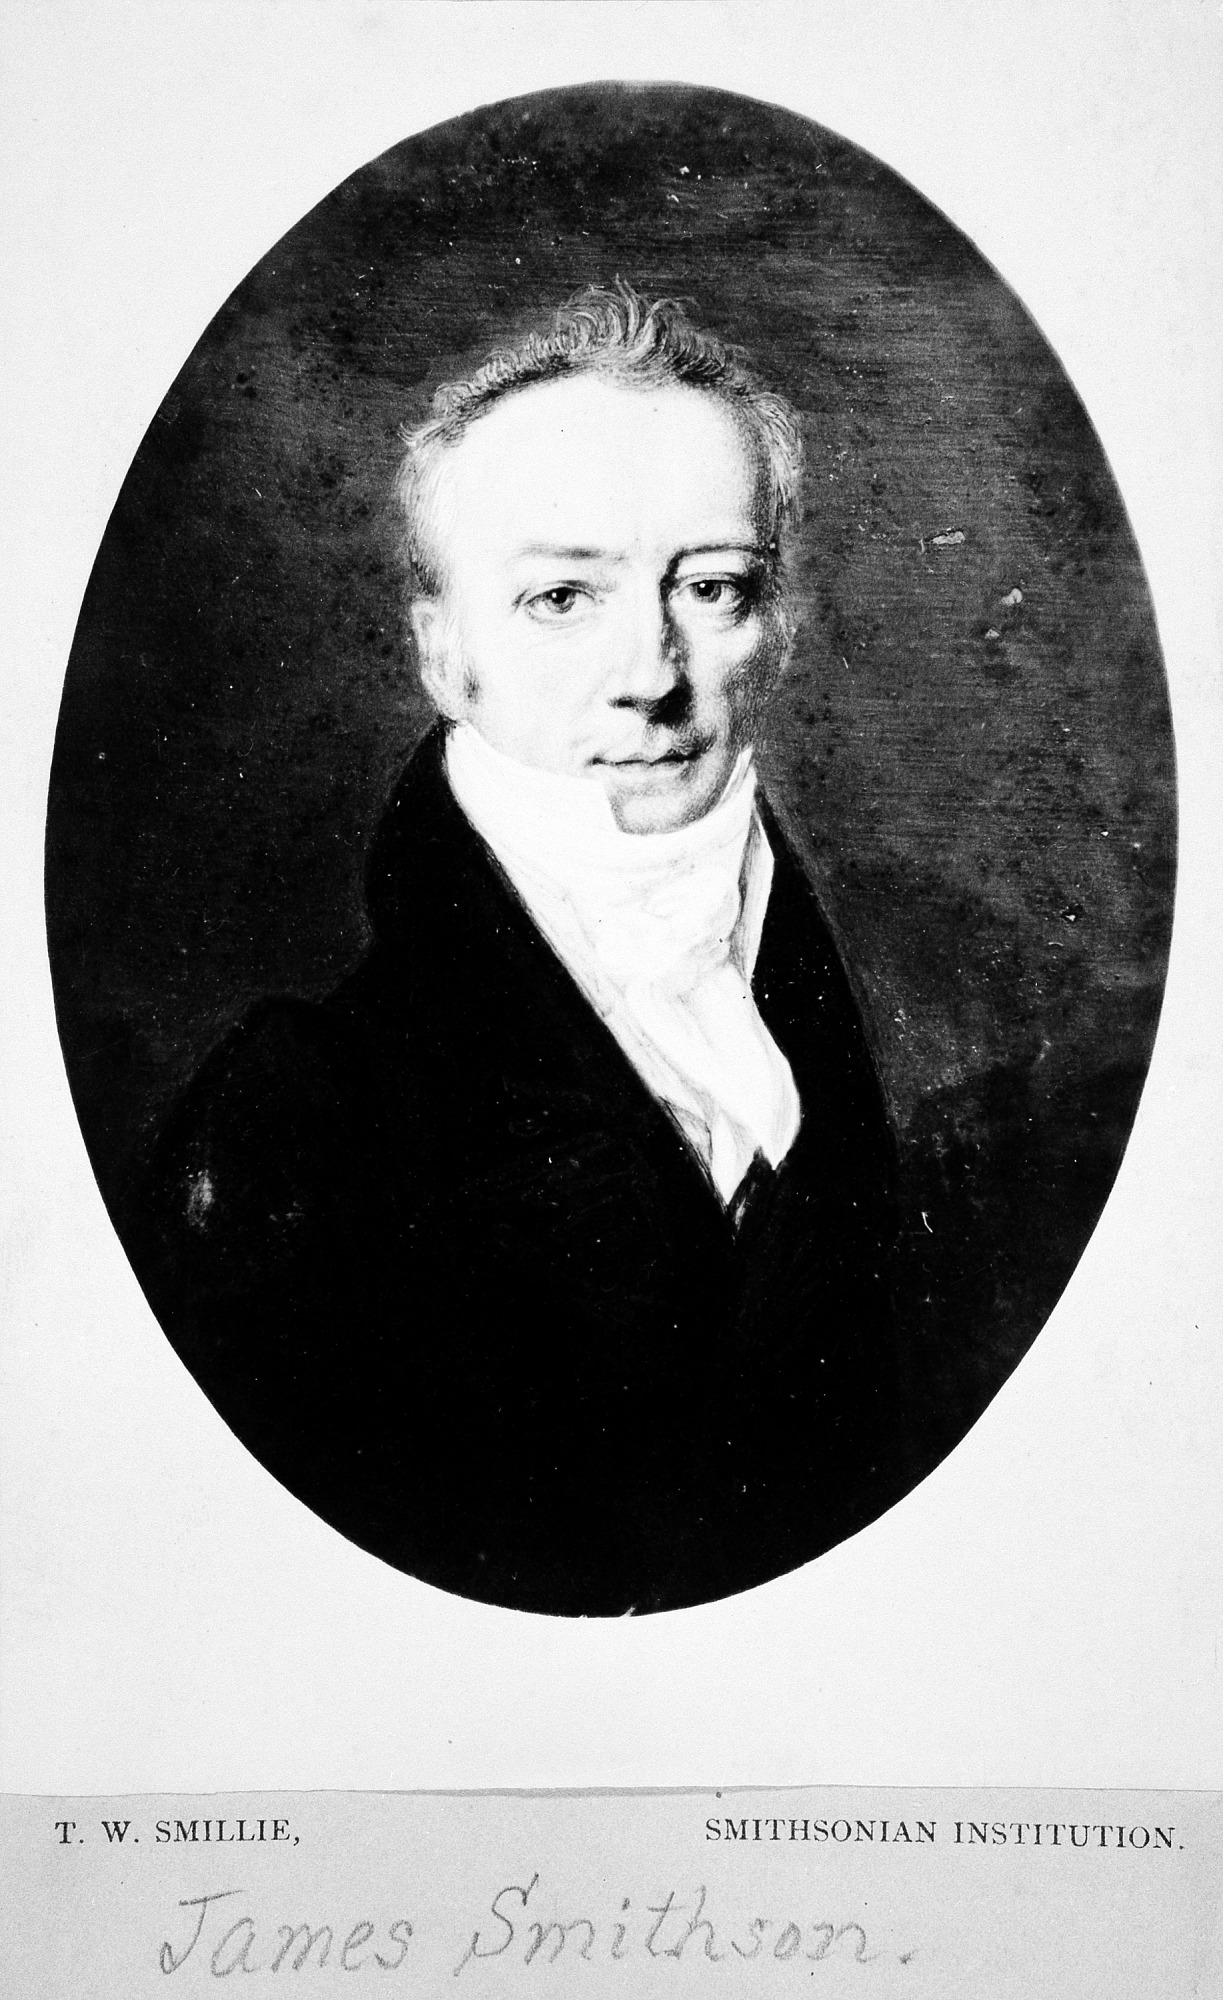 James Smithson Portrait by H. Johns